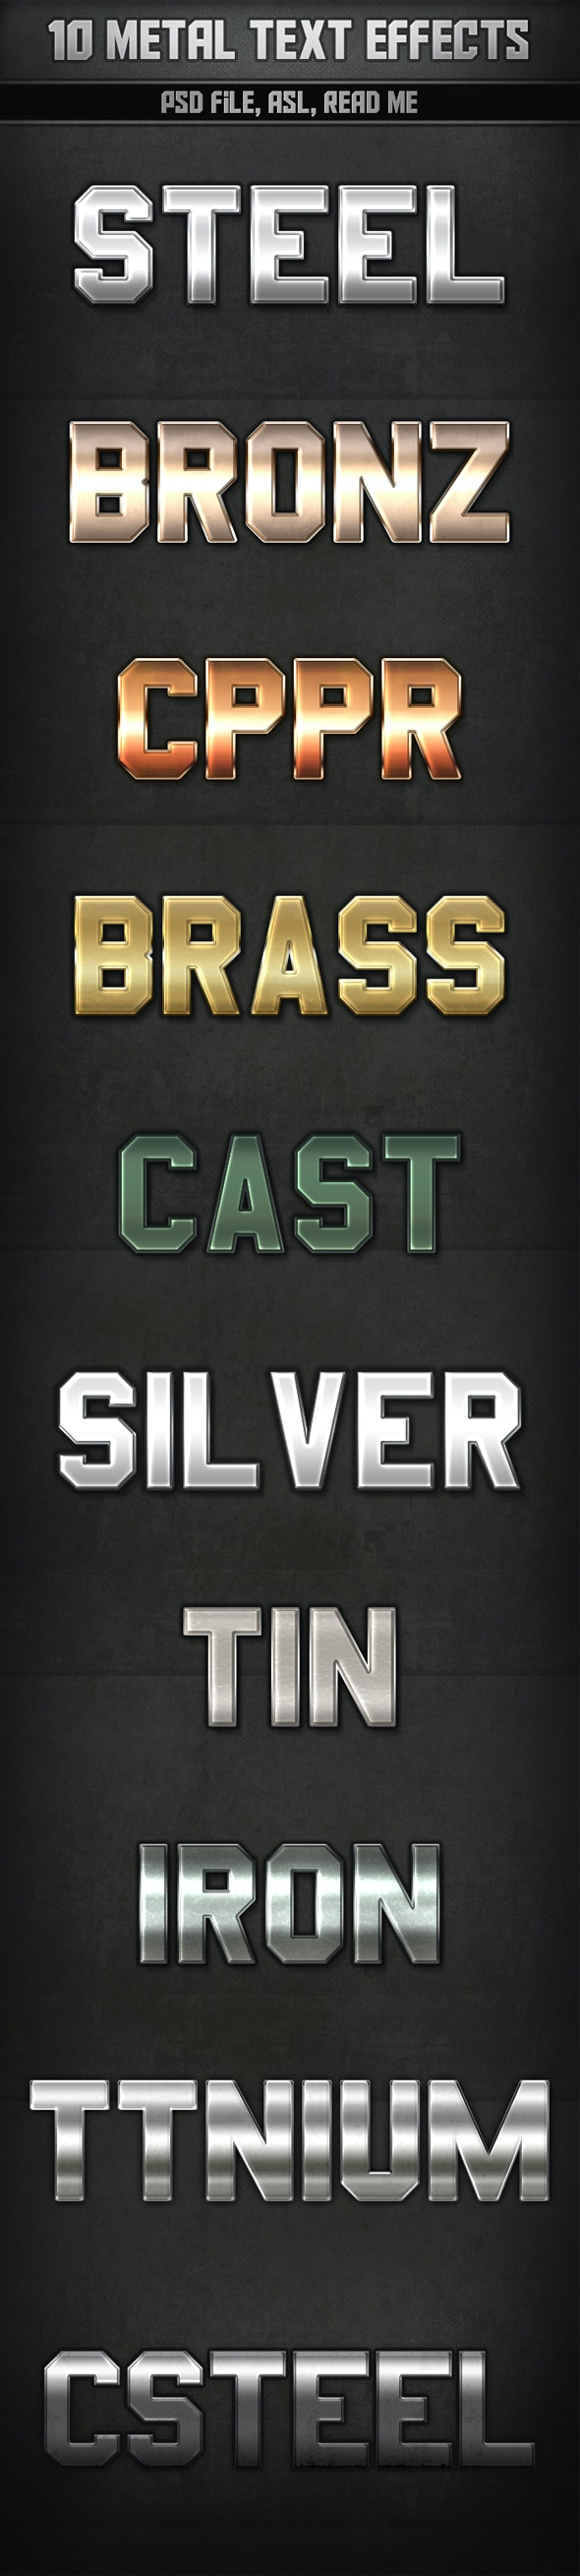 10 Metal Text Effects - Text Effects Styles